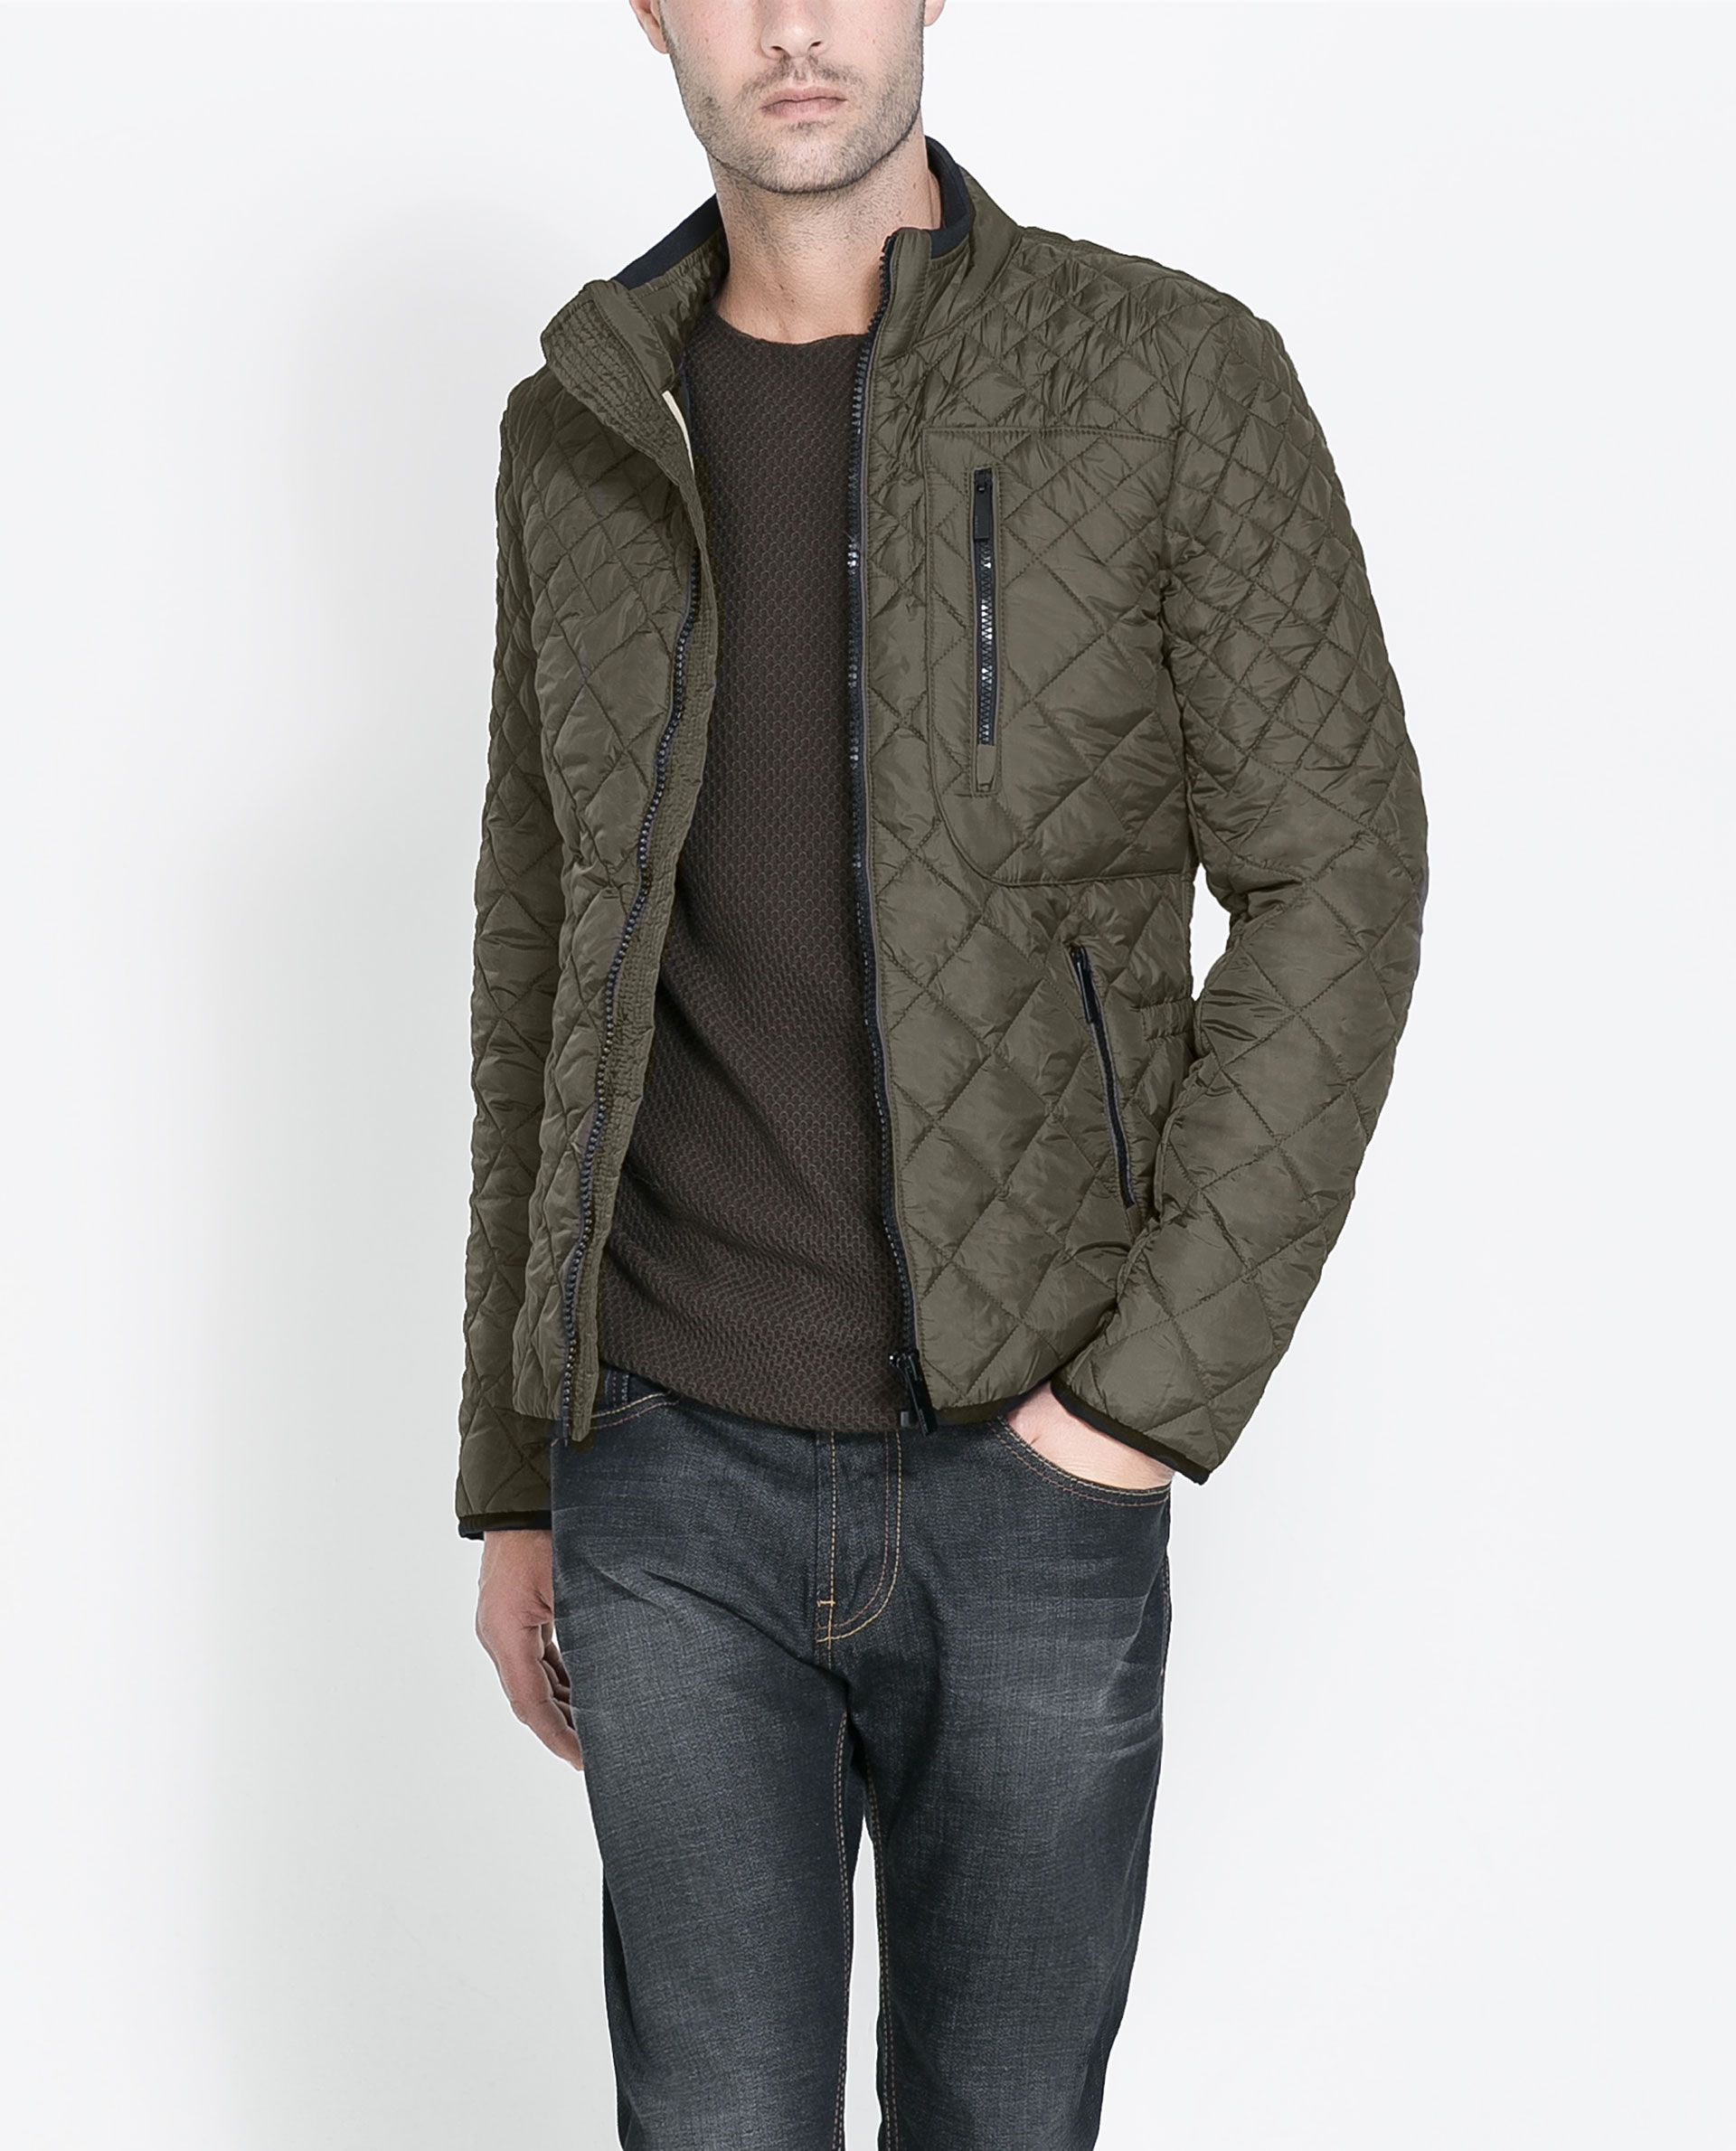 c quilt s jacket mens coats nordstrom quilted men jackets puffer